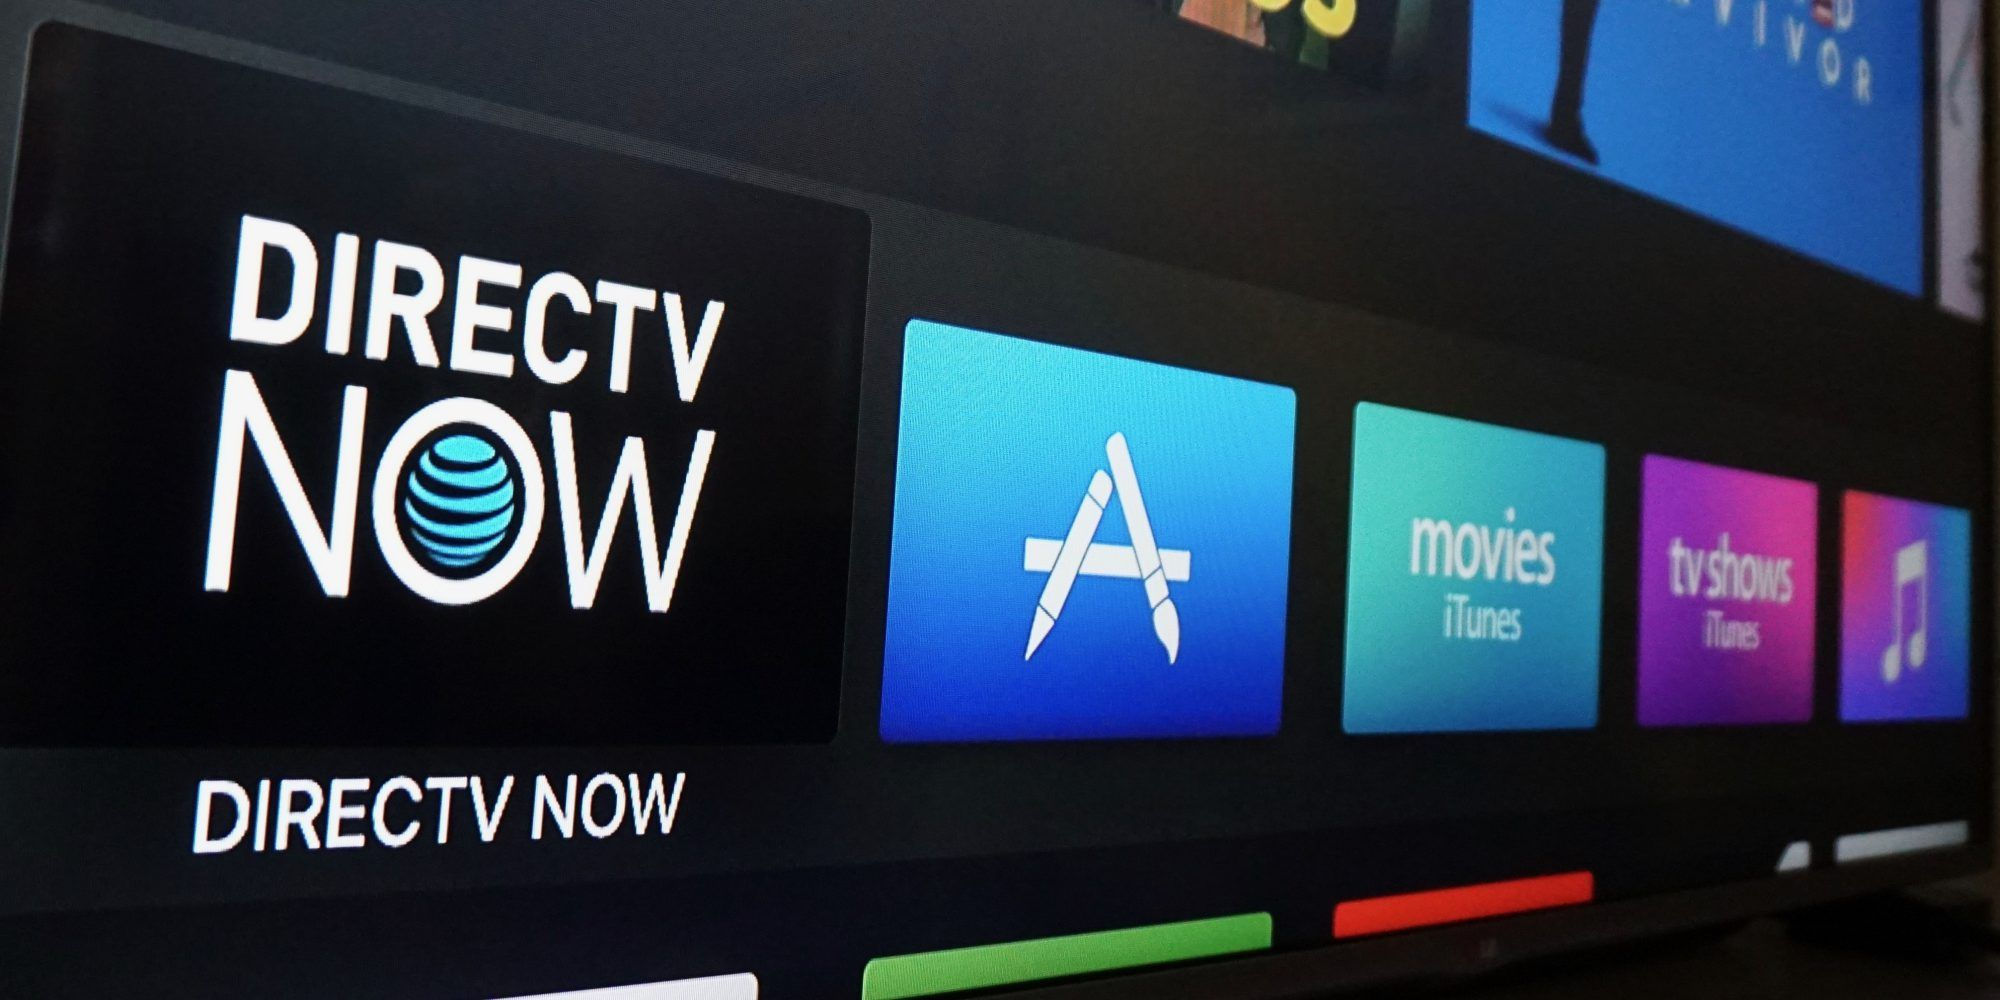 IT'S BACK!!! Free Apple TV with 3 months of DirecTV Now